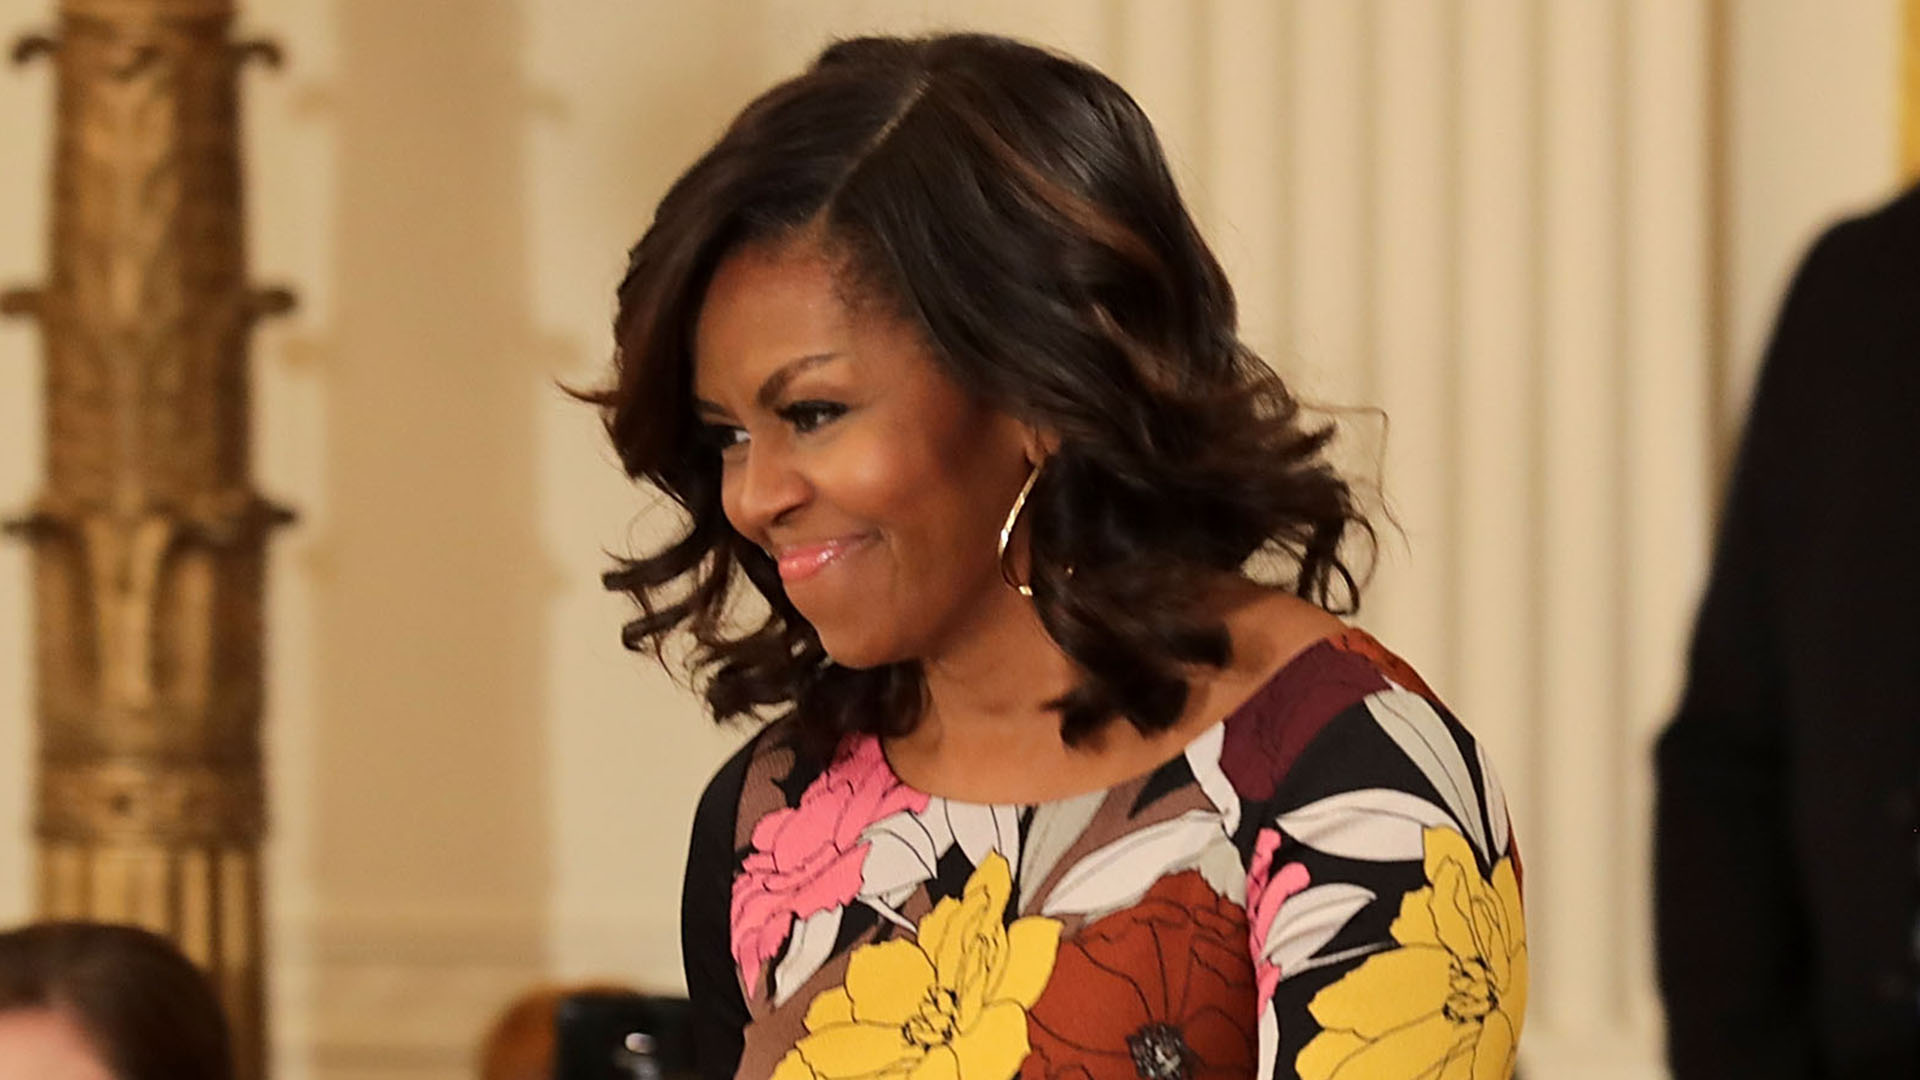 Michelle Obama Shows Off Lob Haircut At White House Event